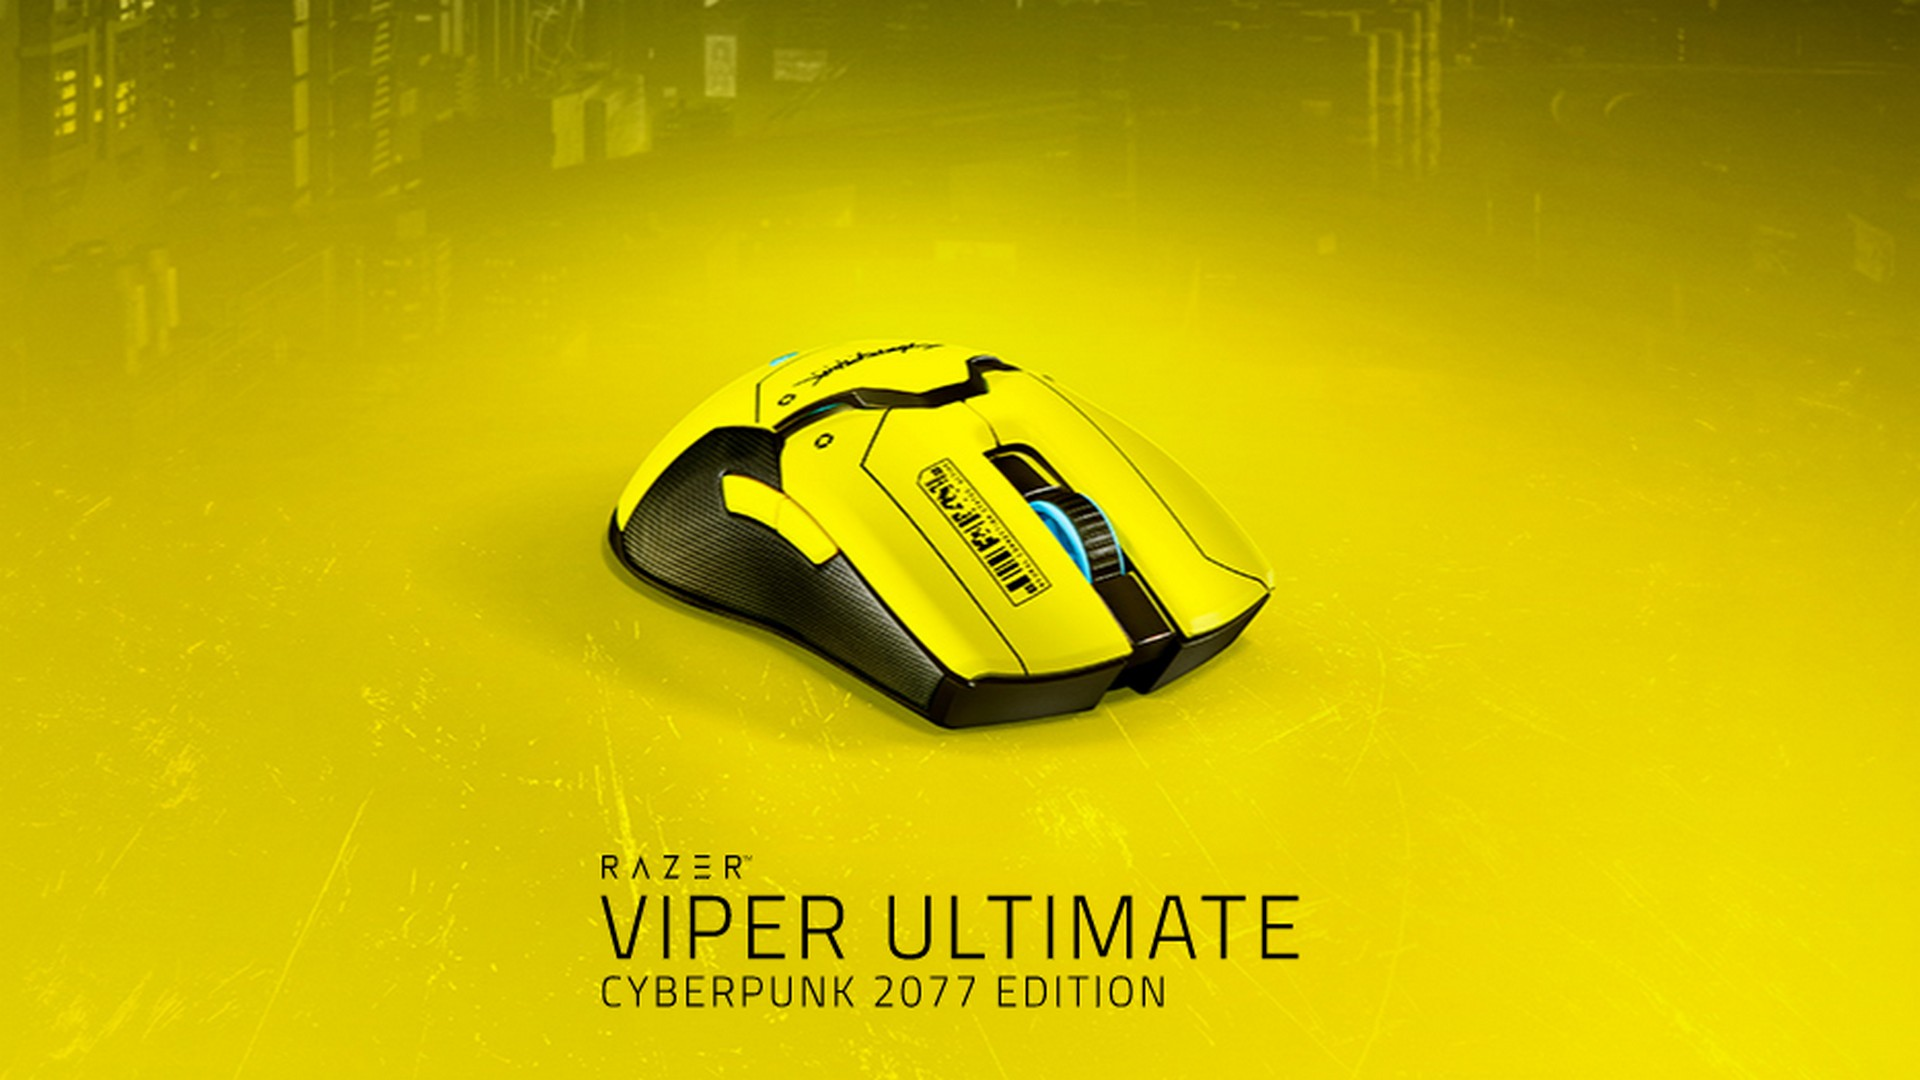 Seize The Day In Night City, With The Razer Viper Ultimate Cyberpunk 2077 Edition